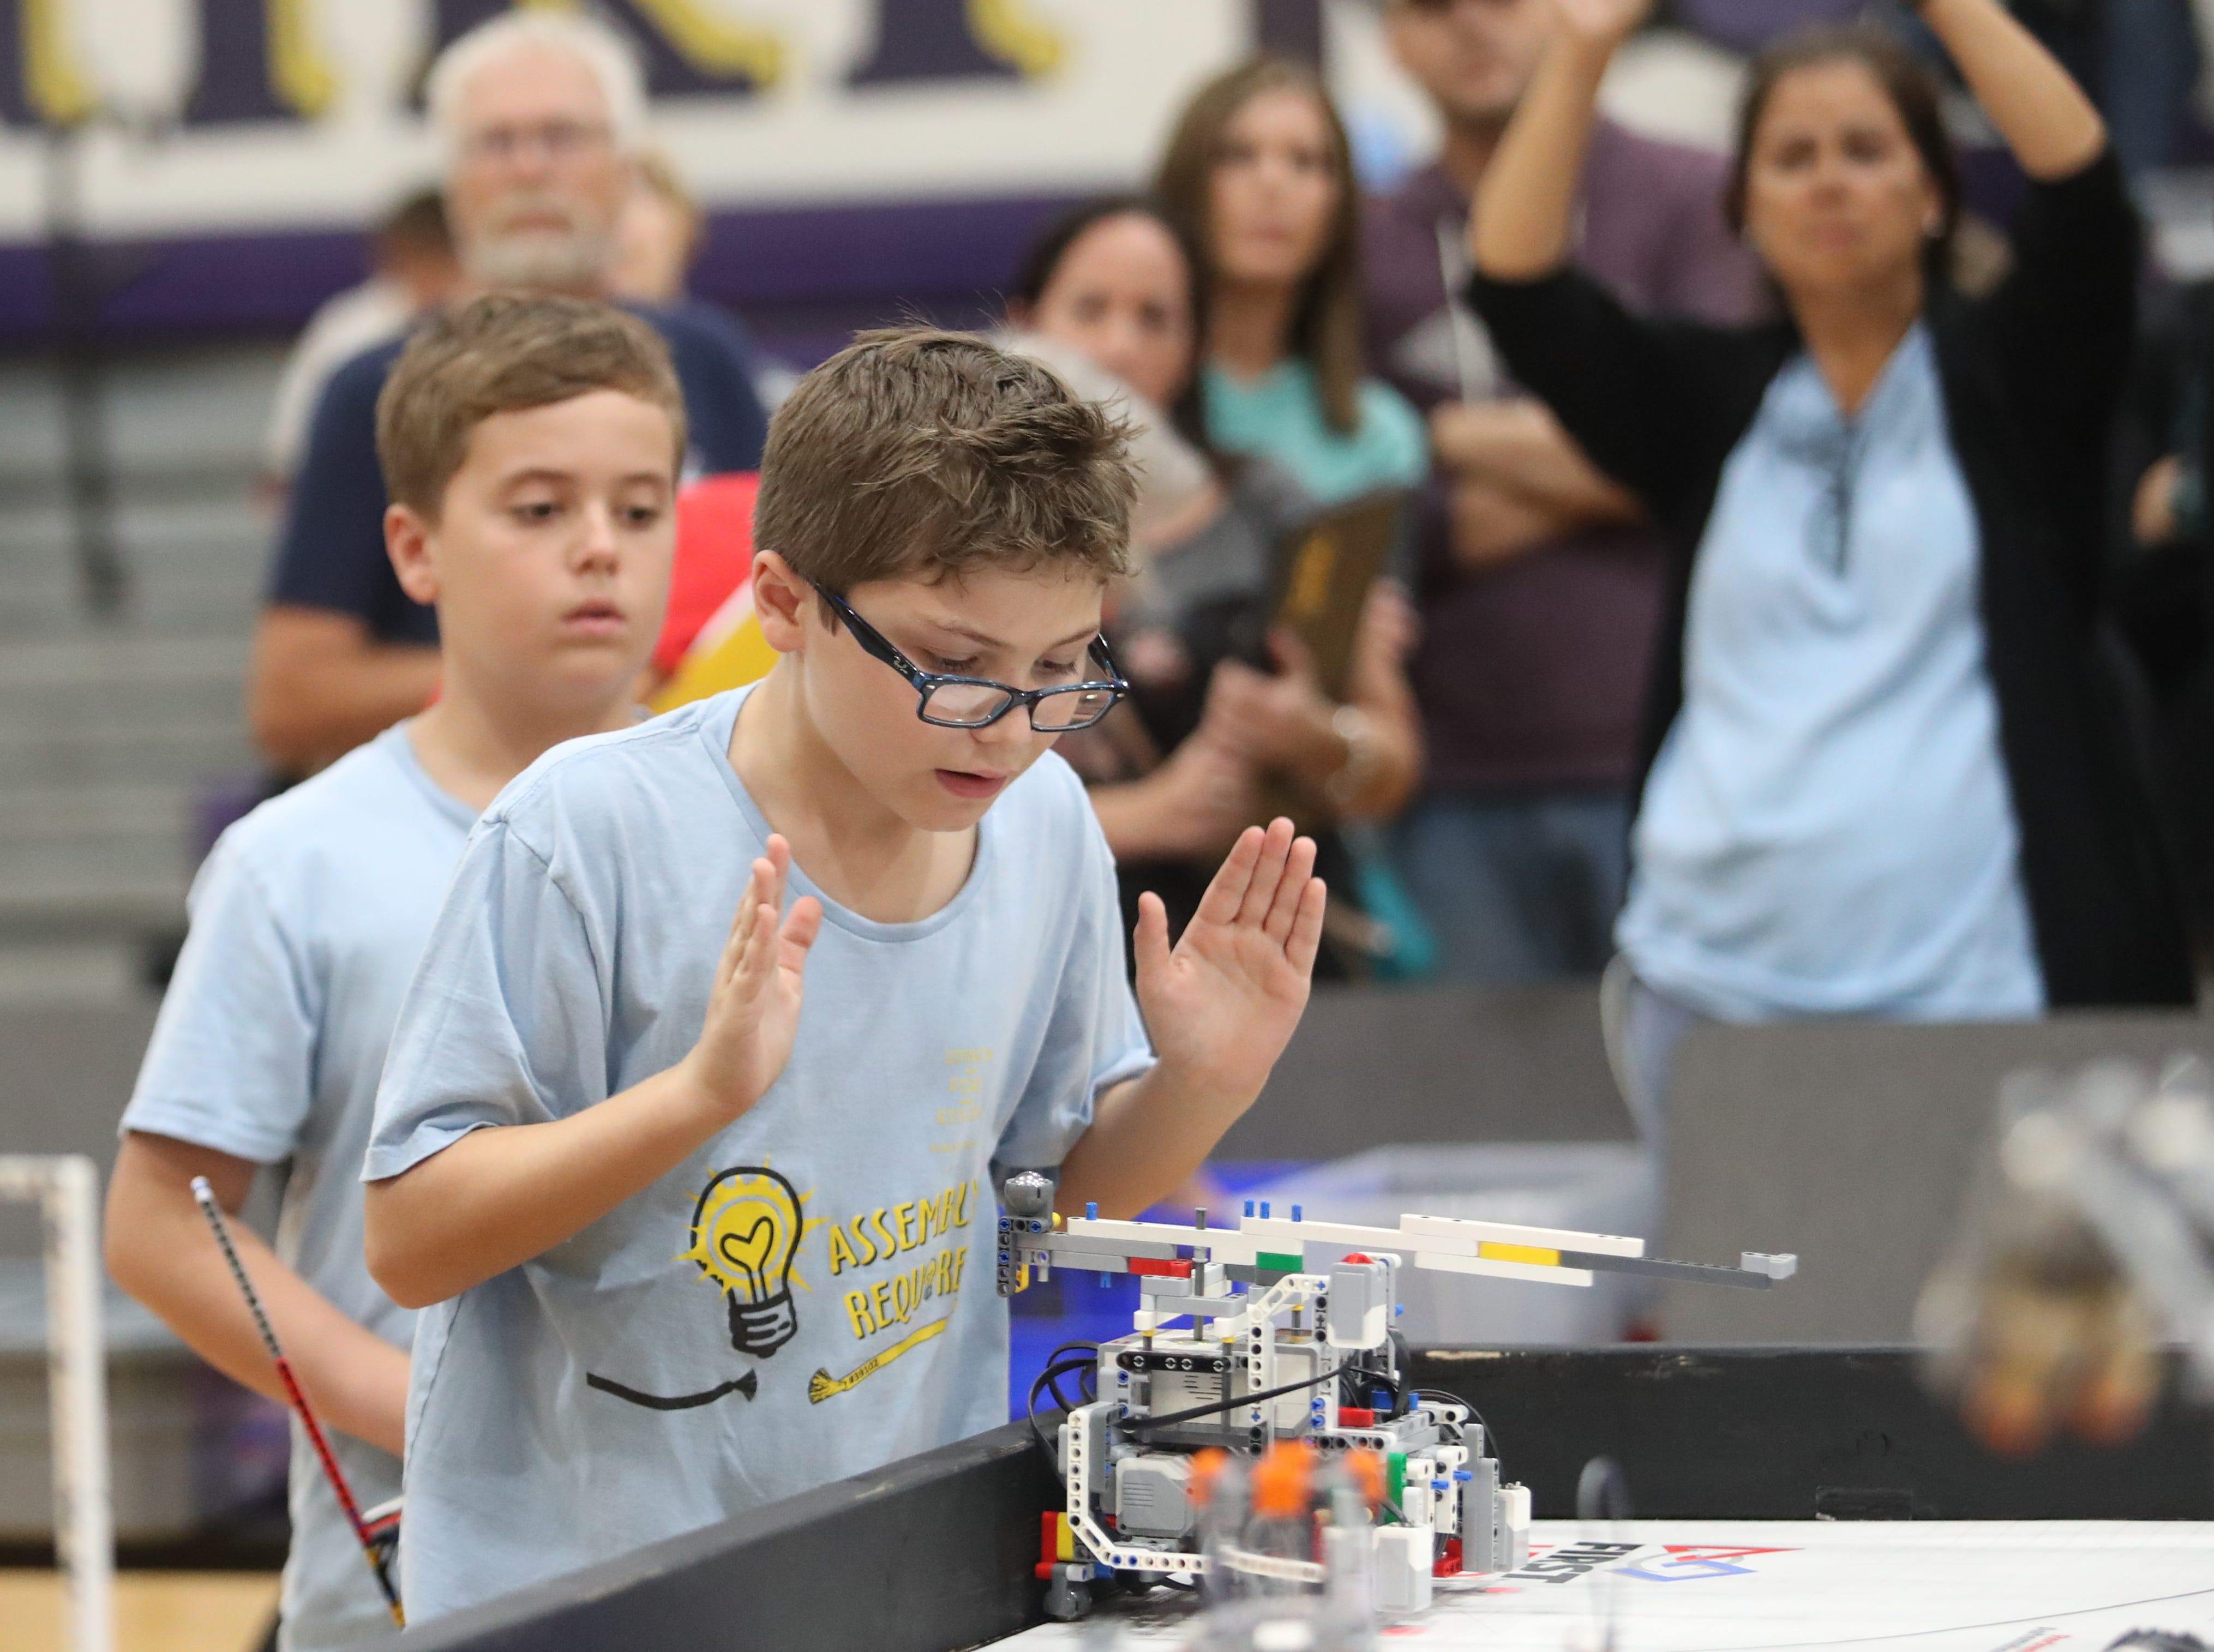 Twenty eight teams from six counties compete in the Cypress Lake First LEGO League qualifying tournament at Cypress Lake Middle School on Saturday, January 12, 2019, in Fort Myers.